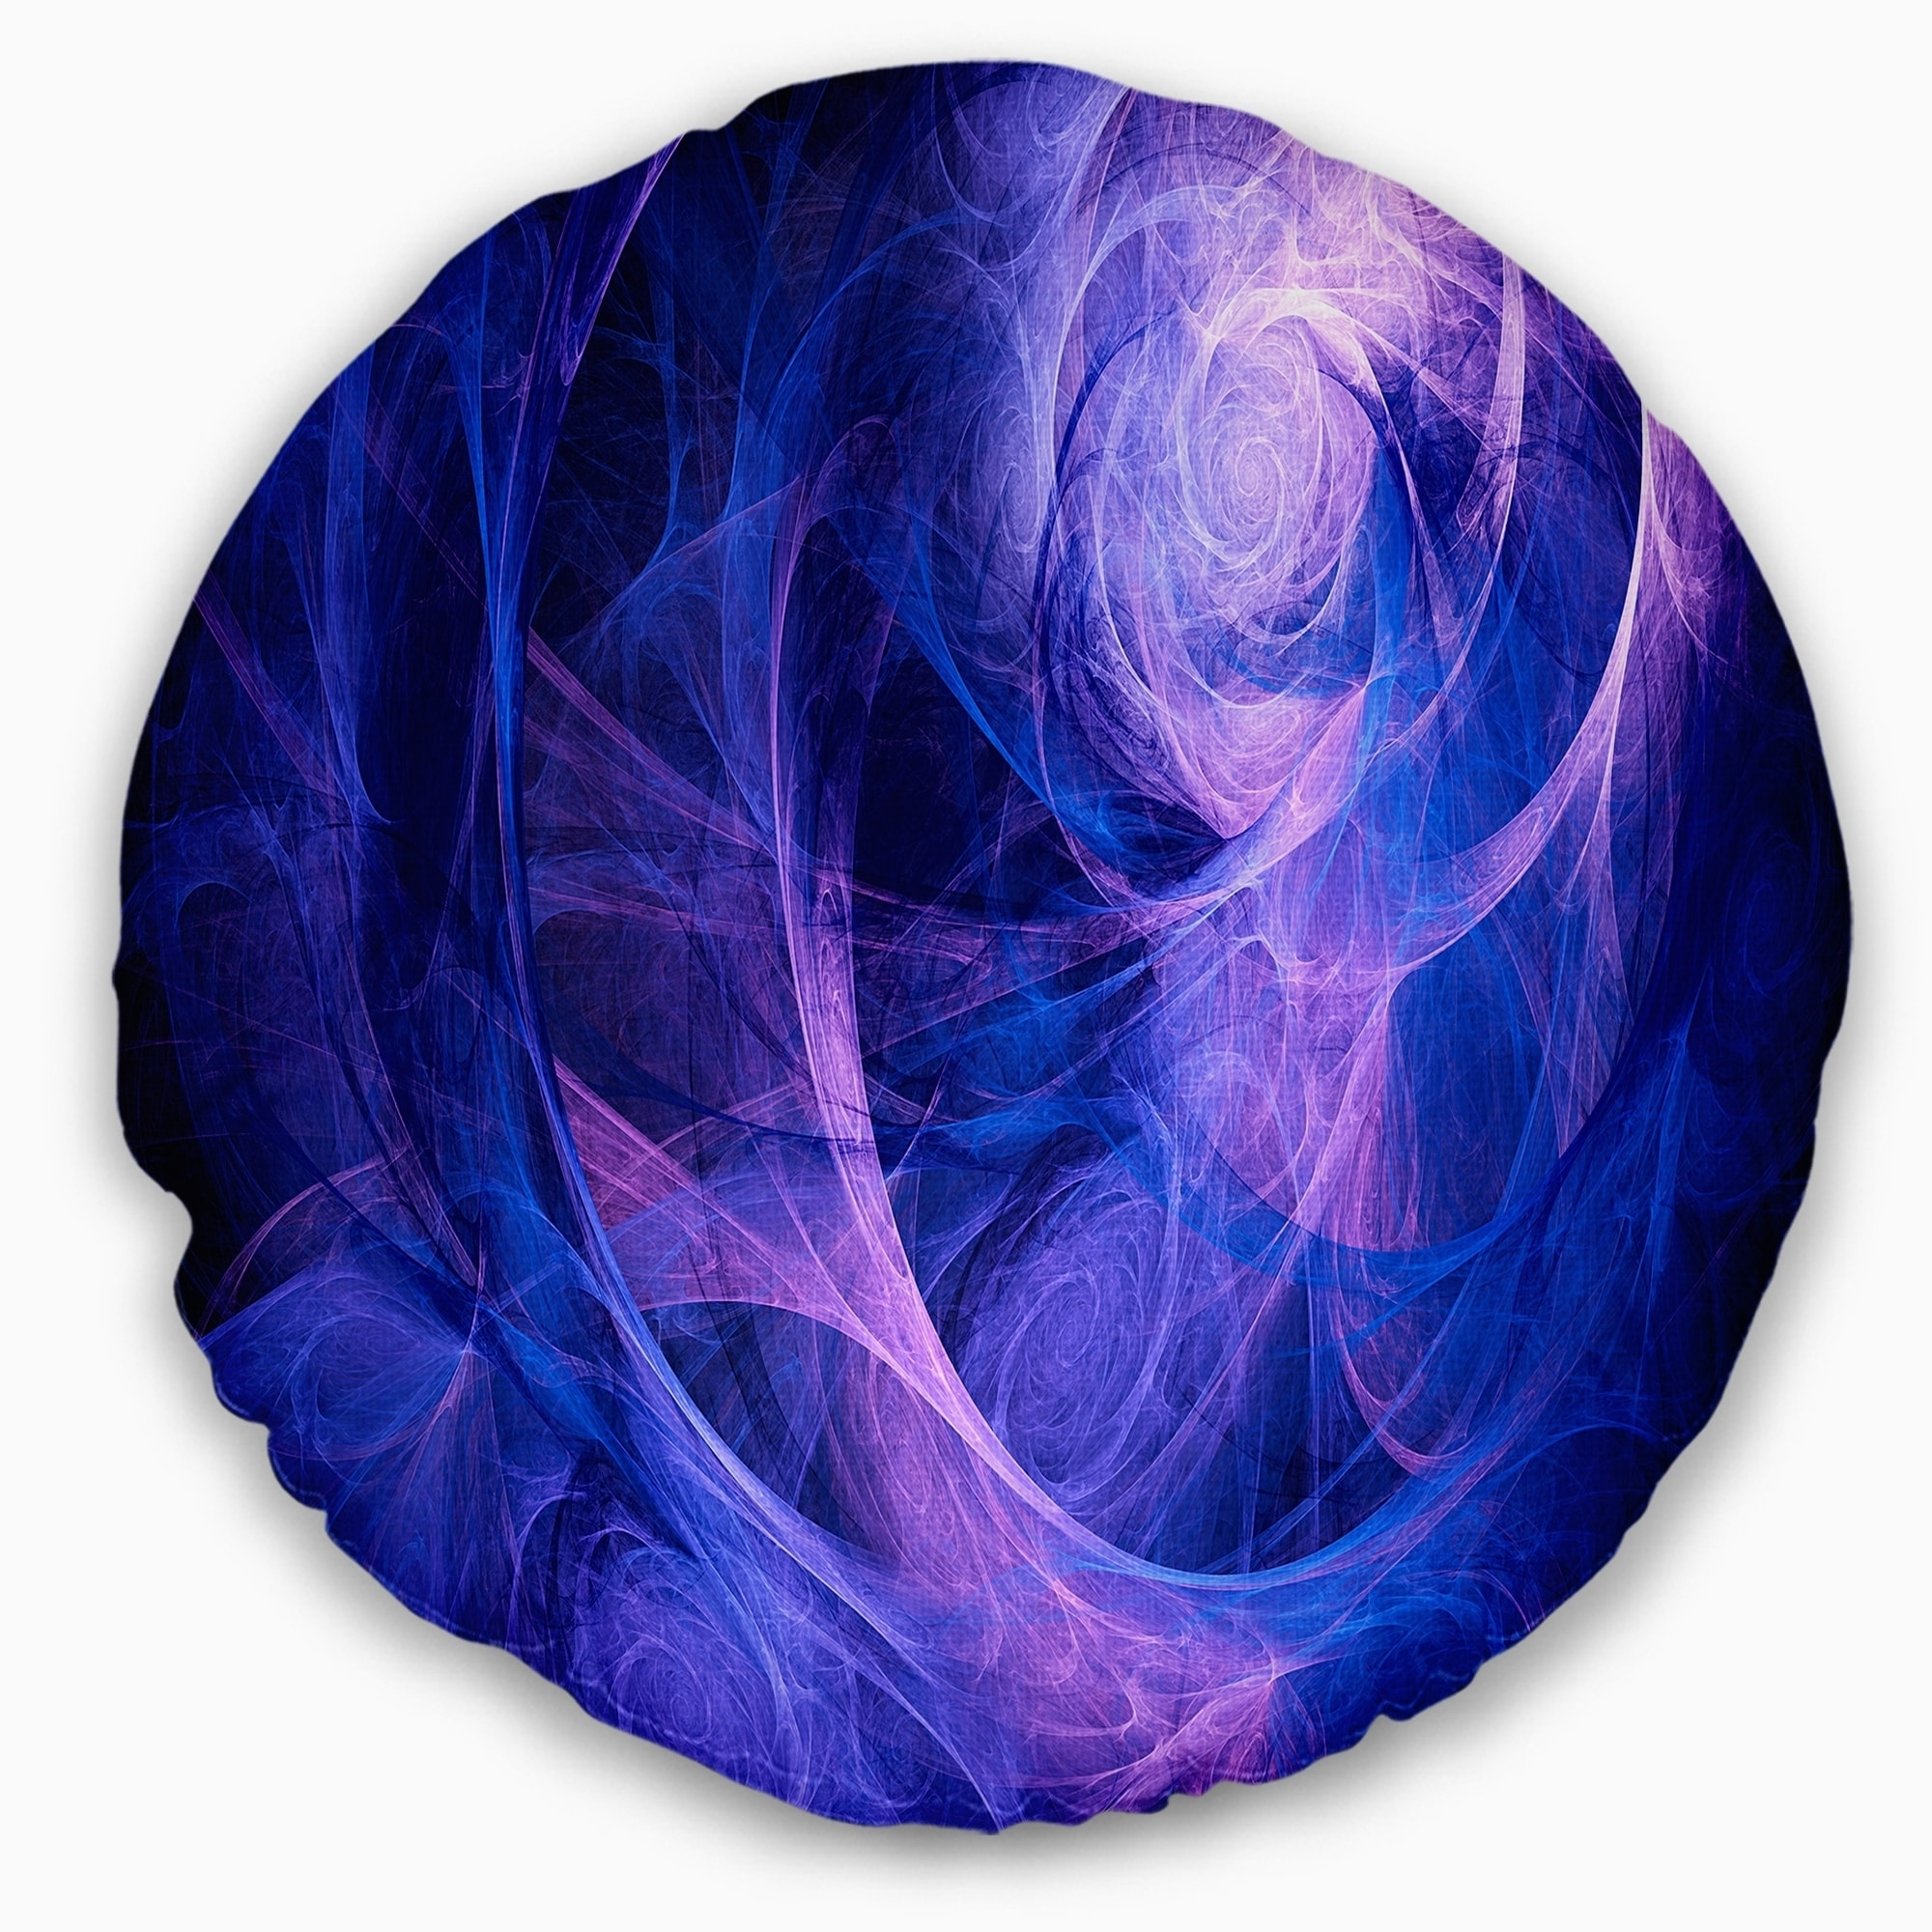 Designart CU7907-16-16-C Bright Blue Stormy Sky Abstract Round Cushion Cover for Living Room Sofa Throw Pillow 16 Insert Printed On Both Side